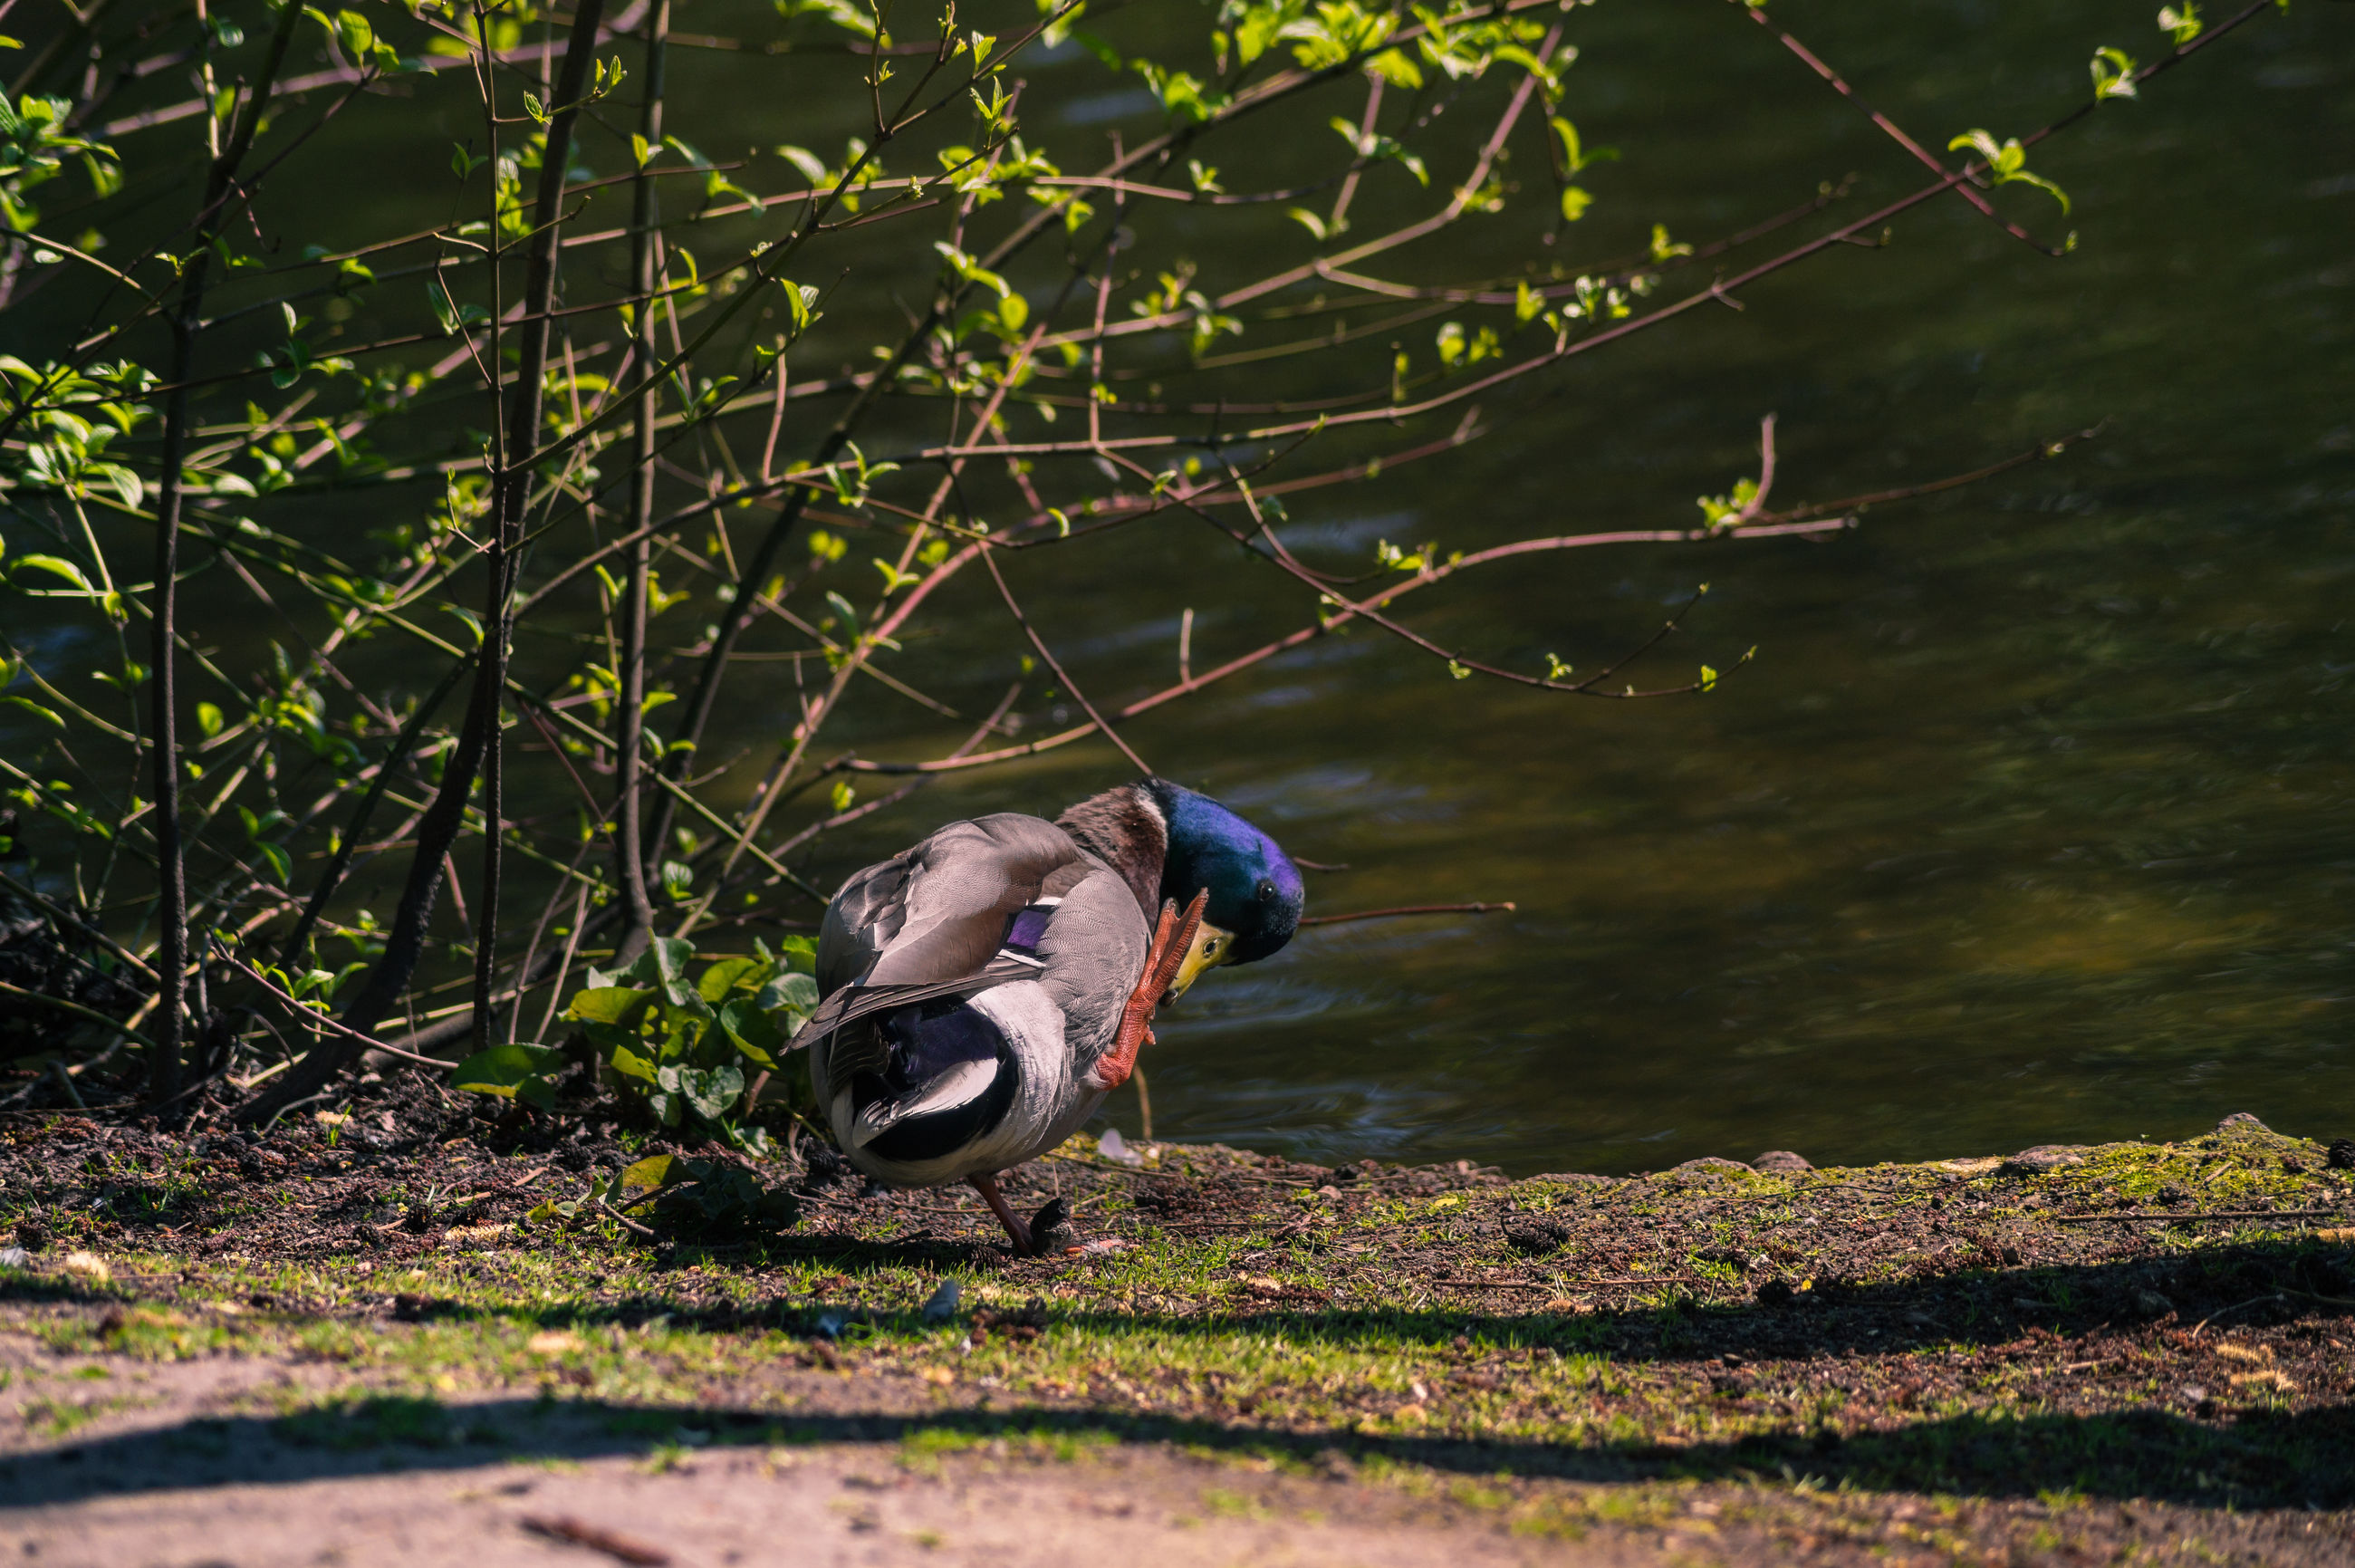 animal themes, animals in the wild, one animal, wildlife, water, bird, nature, lake, outdoors, beauty in nature, side view, day, swimming, no people, full length, zoology, tree, close-up, two animals, plant